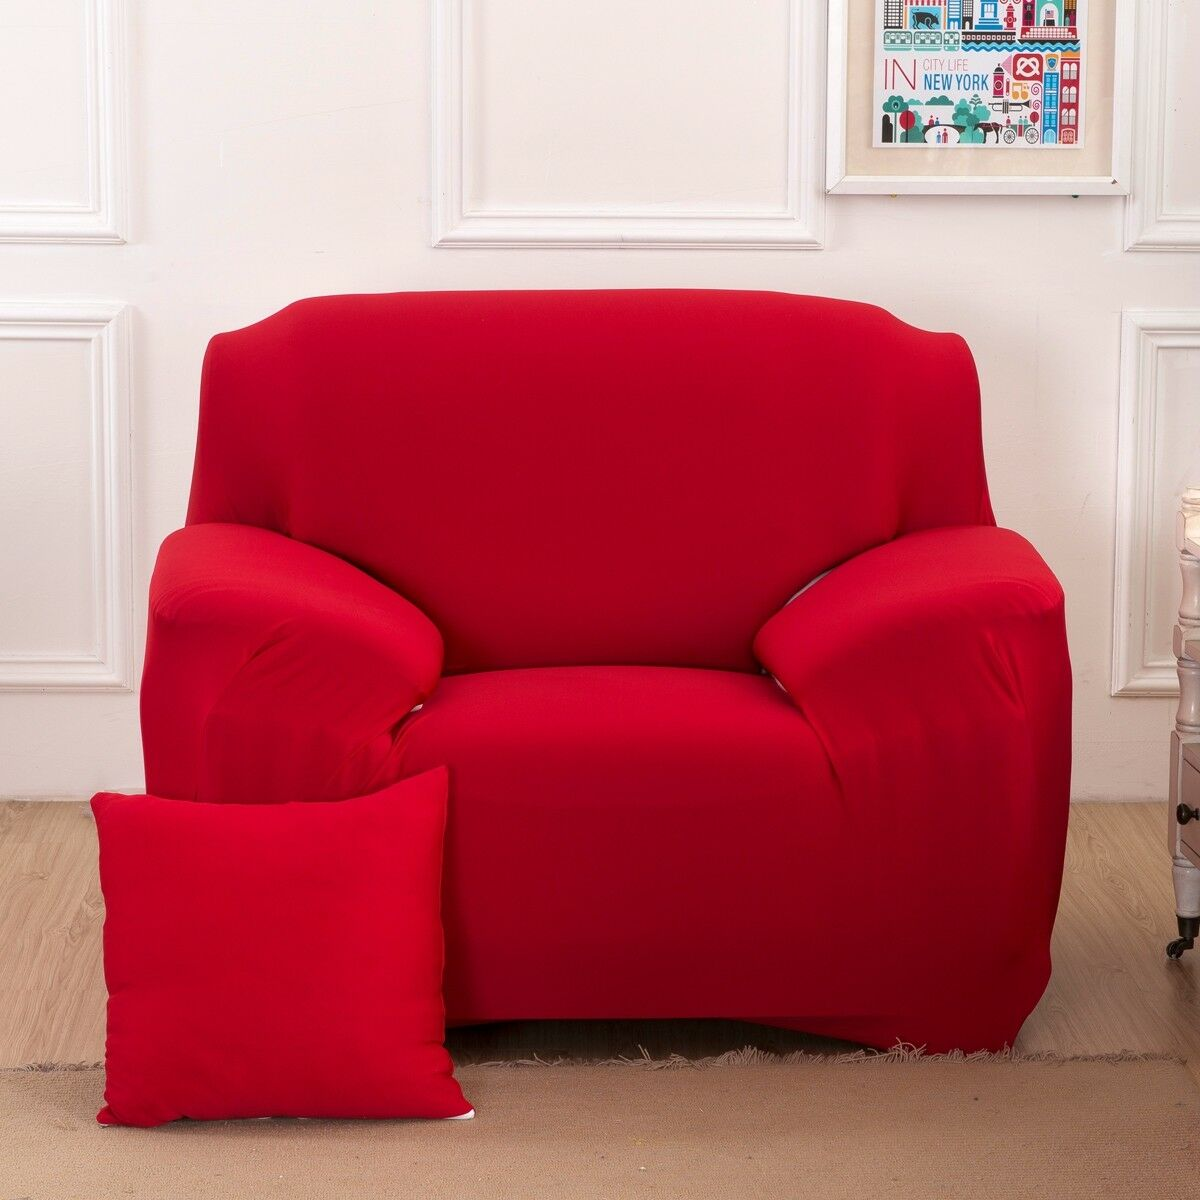 EASY-Stretch-Couch-Sofa-Lounge-Covers-Recliner-1-2-3-Seater-Dining-Chair-Cover thumbnail 85